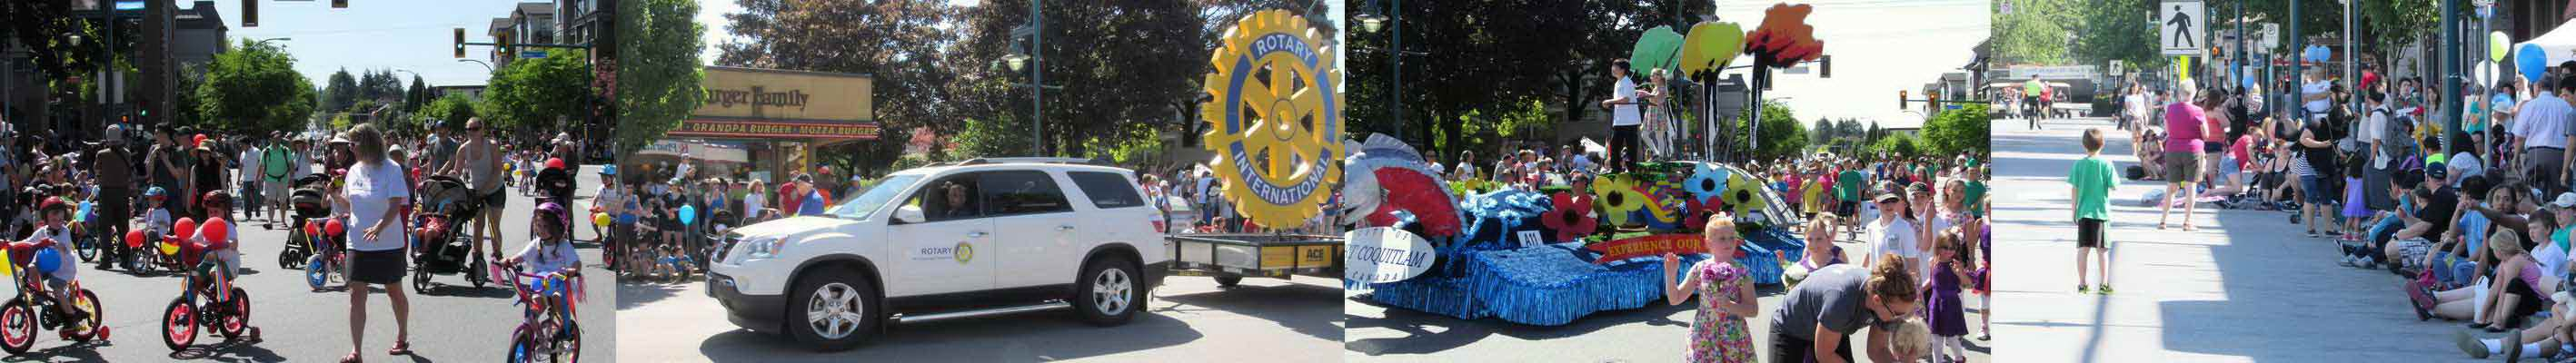 Image result for ROTARY MAY DAY PARADE 2017